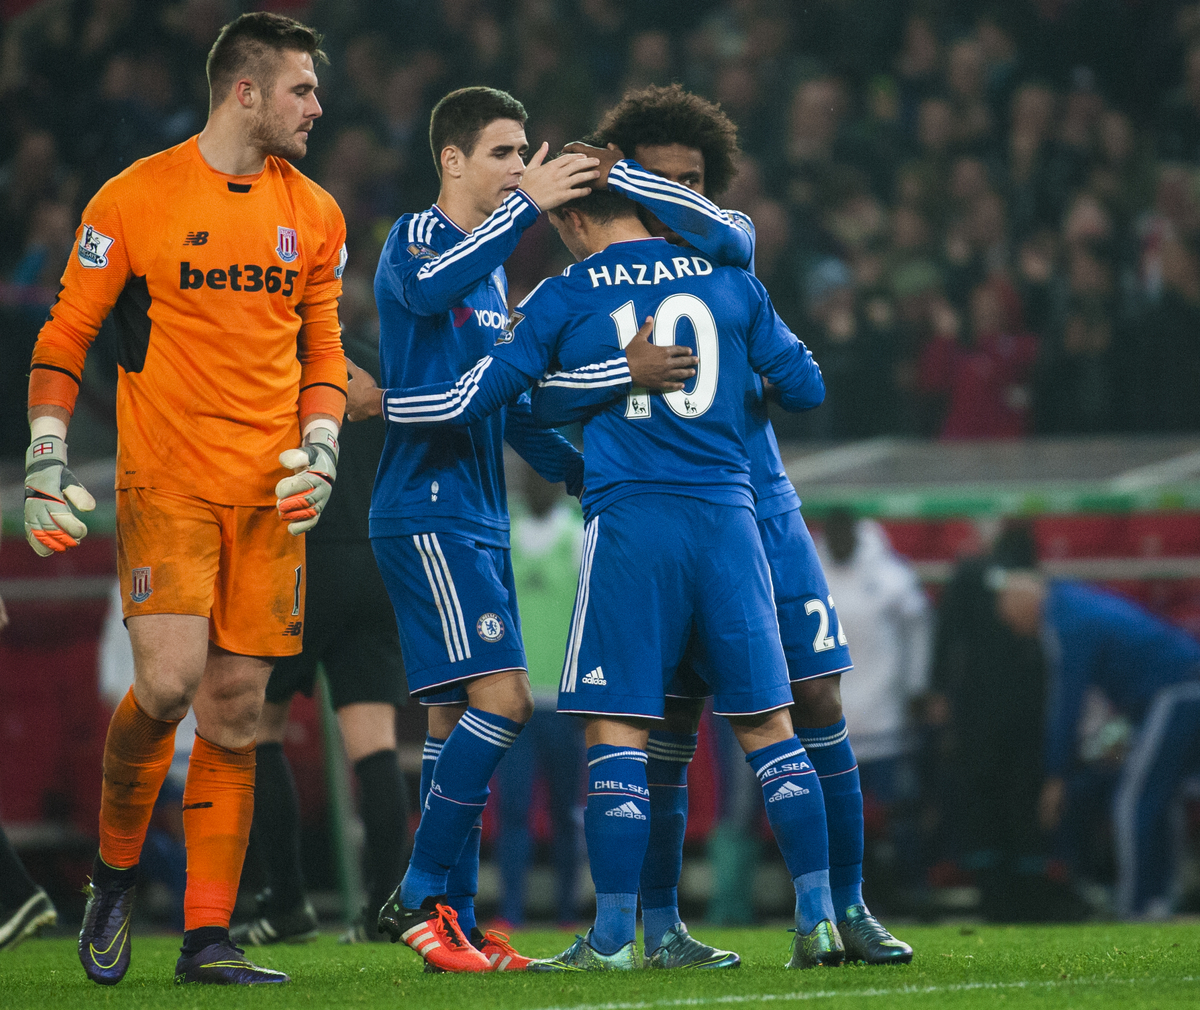 Eden Hazard of Chelsea is conuled by Oscar of Chelsea and Willain of Chelsea  during the Capital One Cup match at the Britannia Stadium, Stoke-on-Trent  Picture by Jack Megaw/Focus Images Ltd +44 7481 764811 27/10/2015